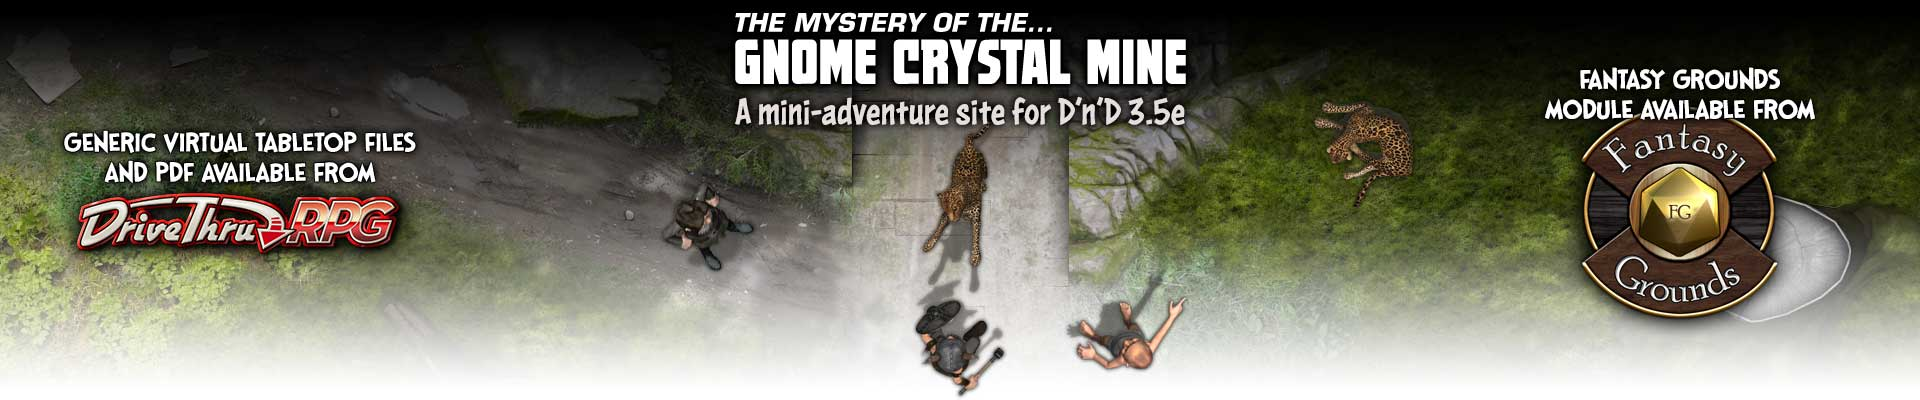 The Gnome Crystal Mine